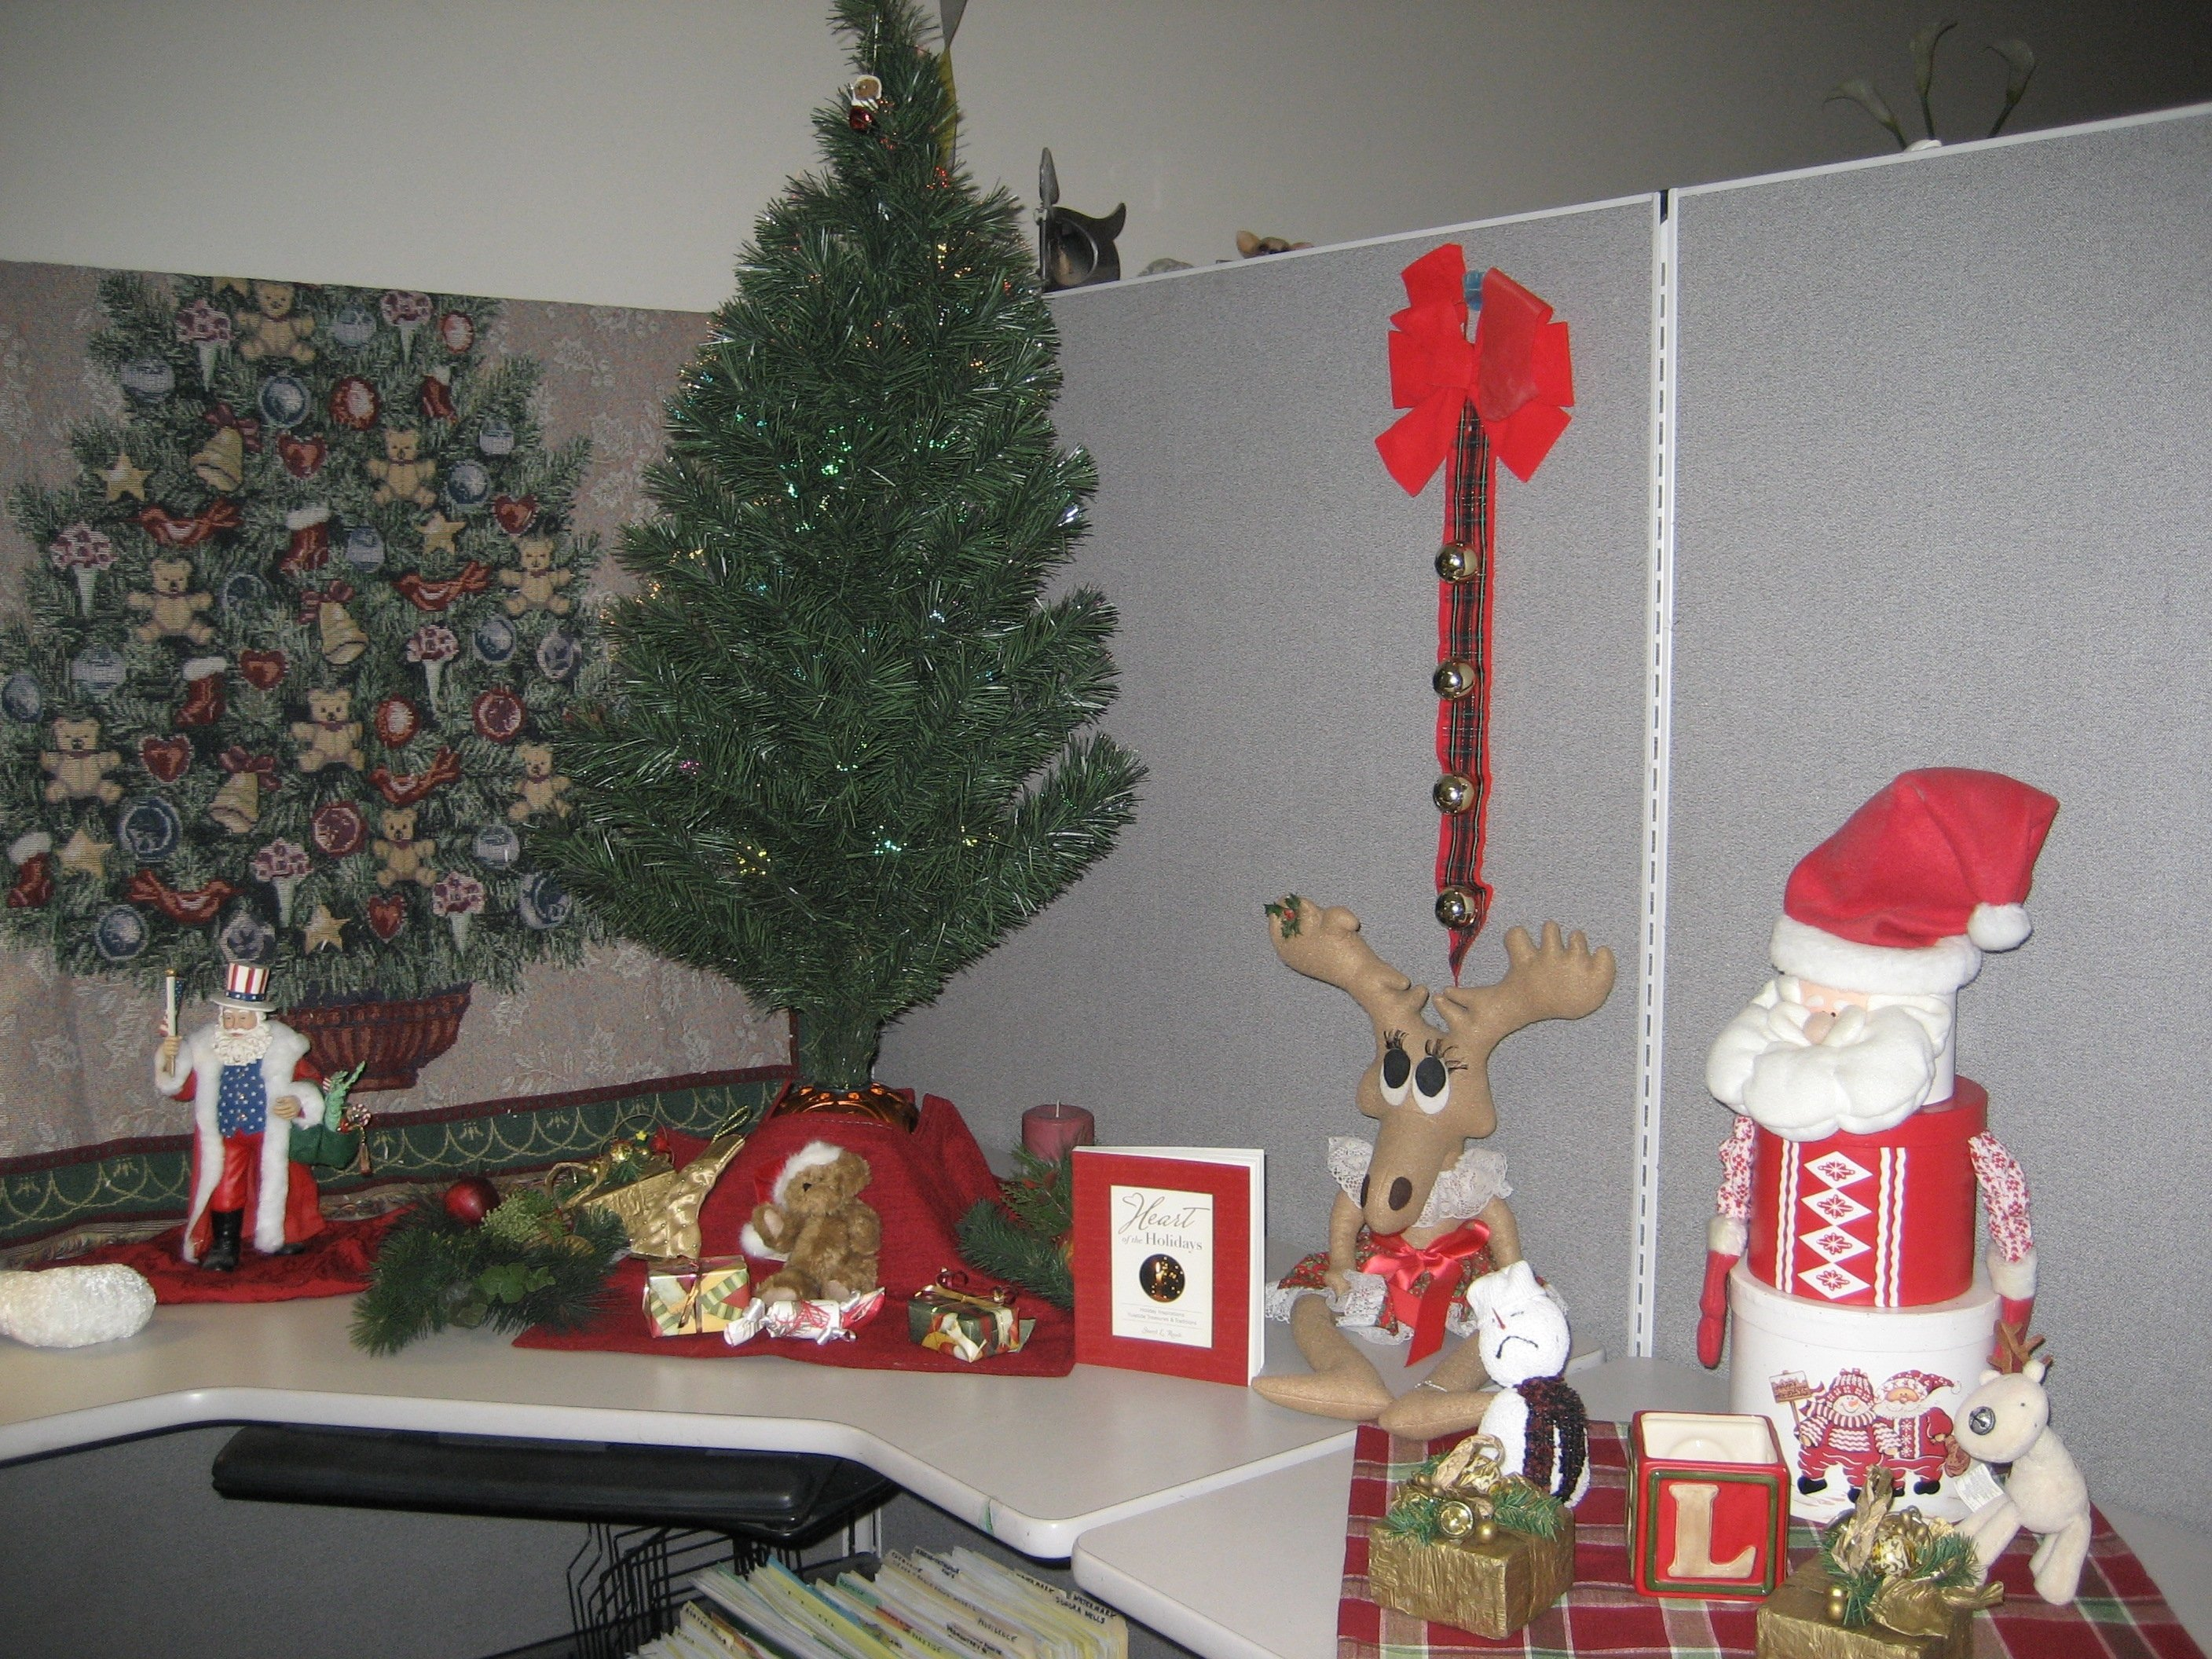 10 Spectacular Office Decorating Ideas For Christmas office workstation design ideas for office decoration themes 1 2021